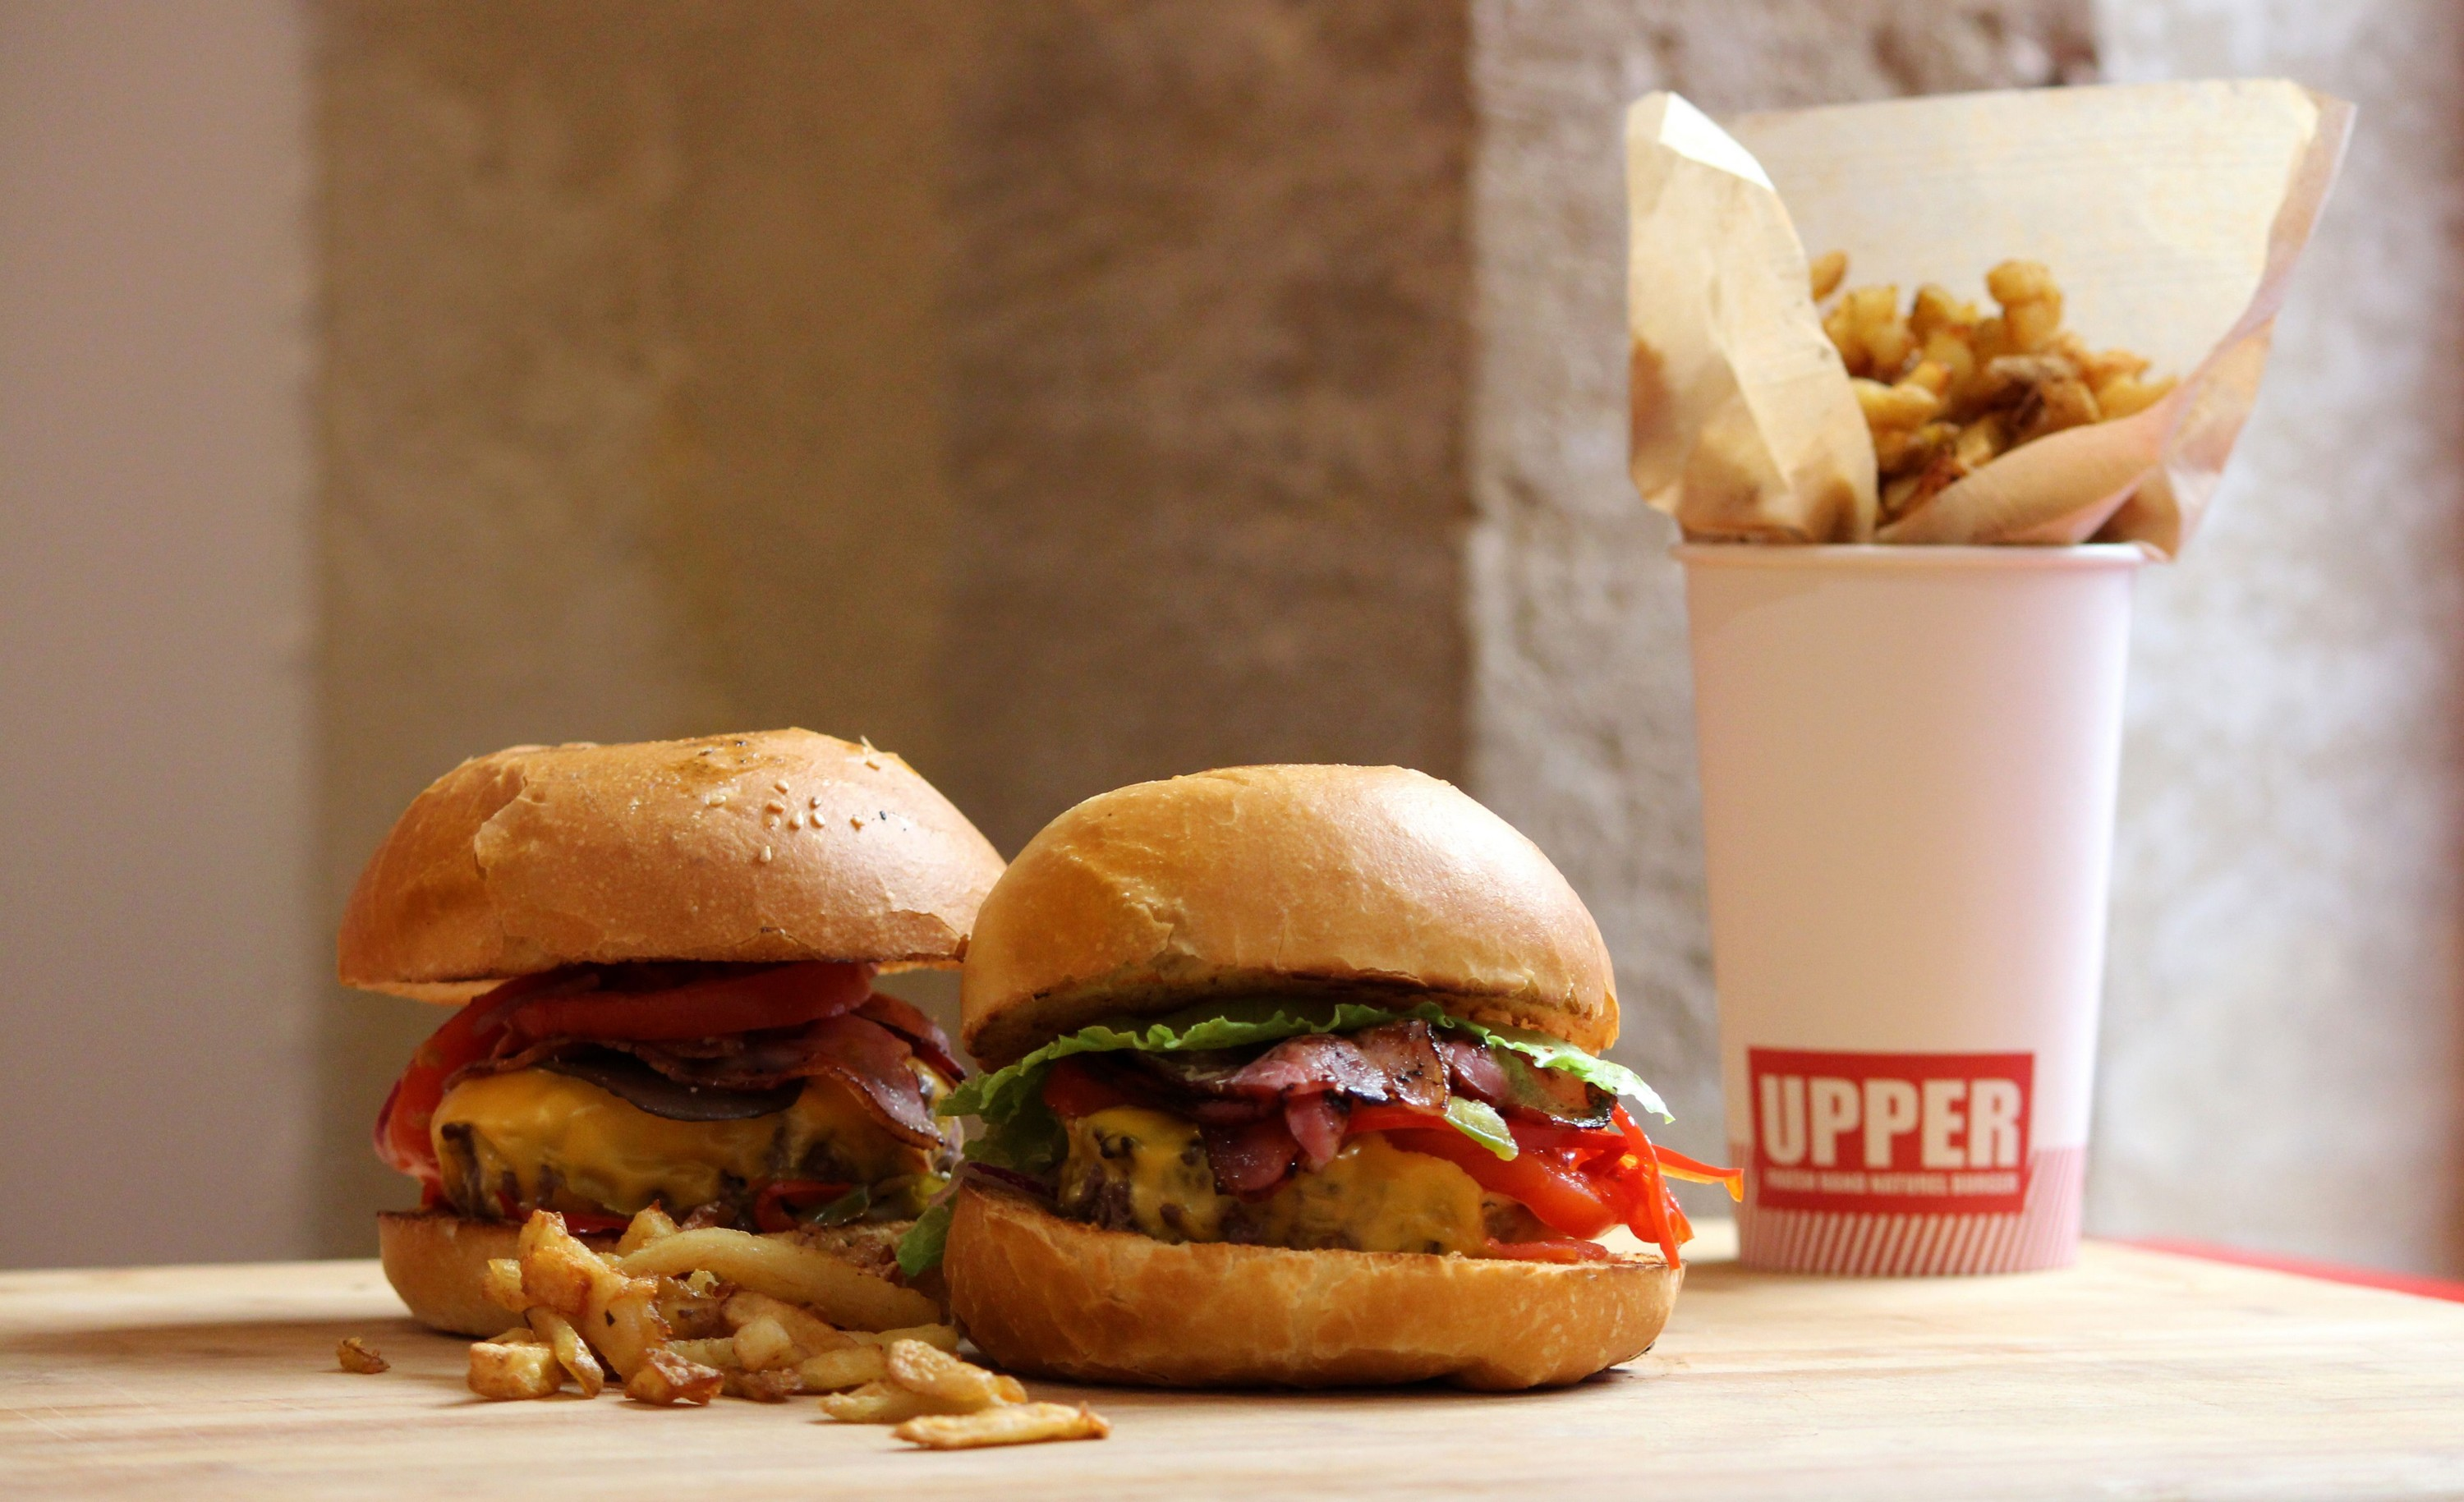 UpperBurger - Burger gourmet à Bordeaux